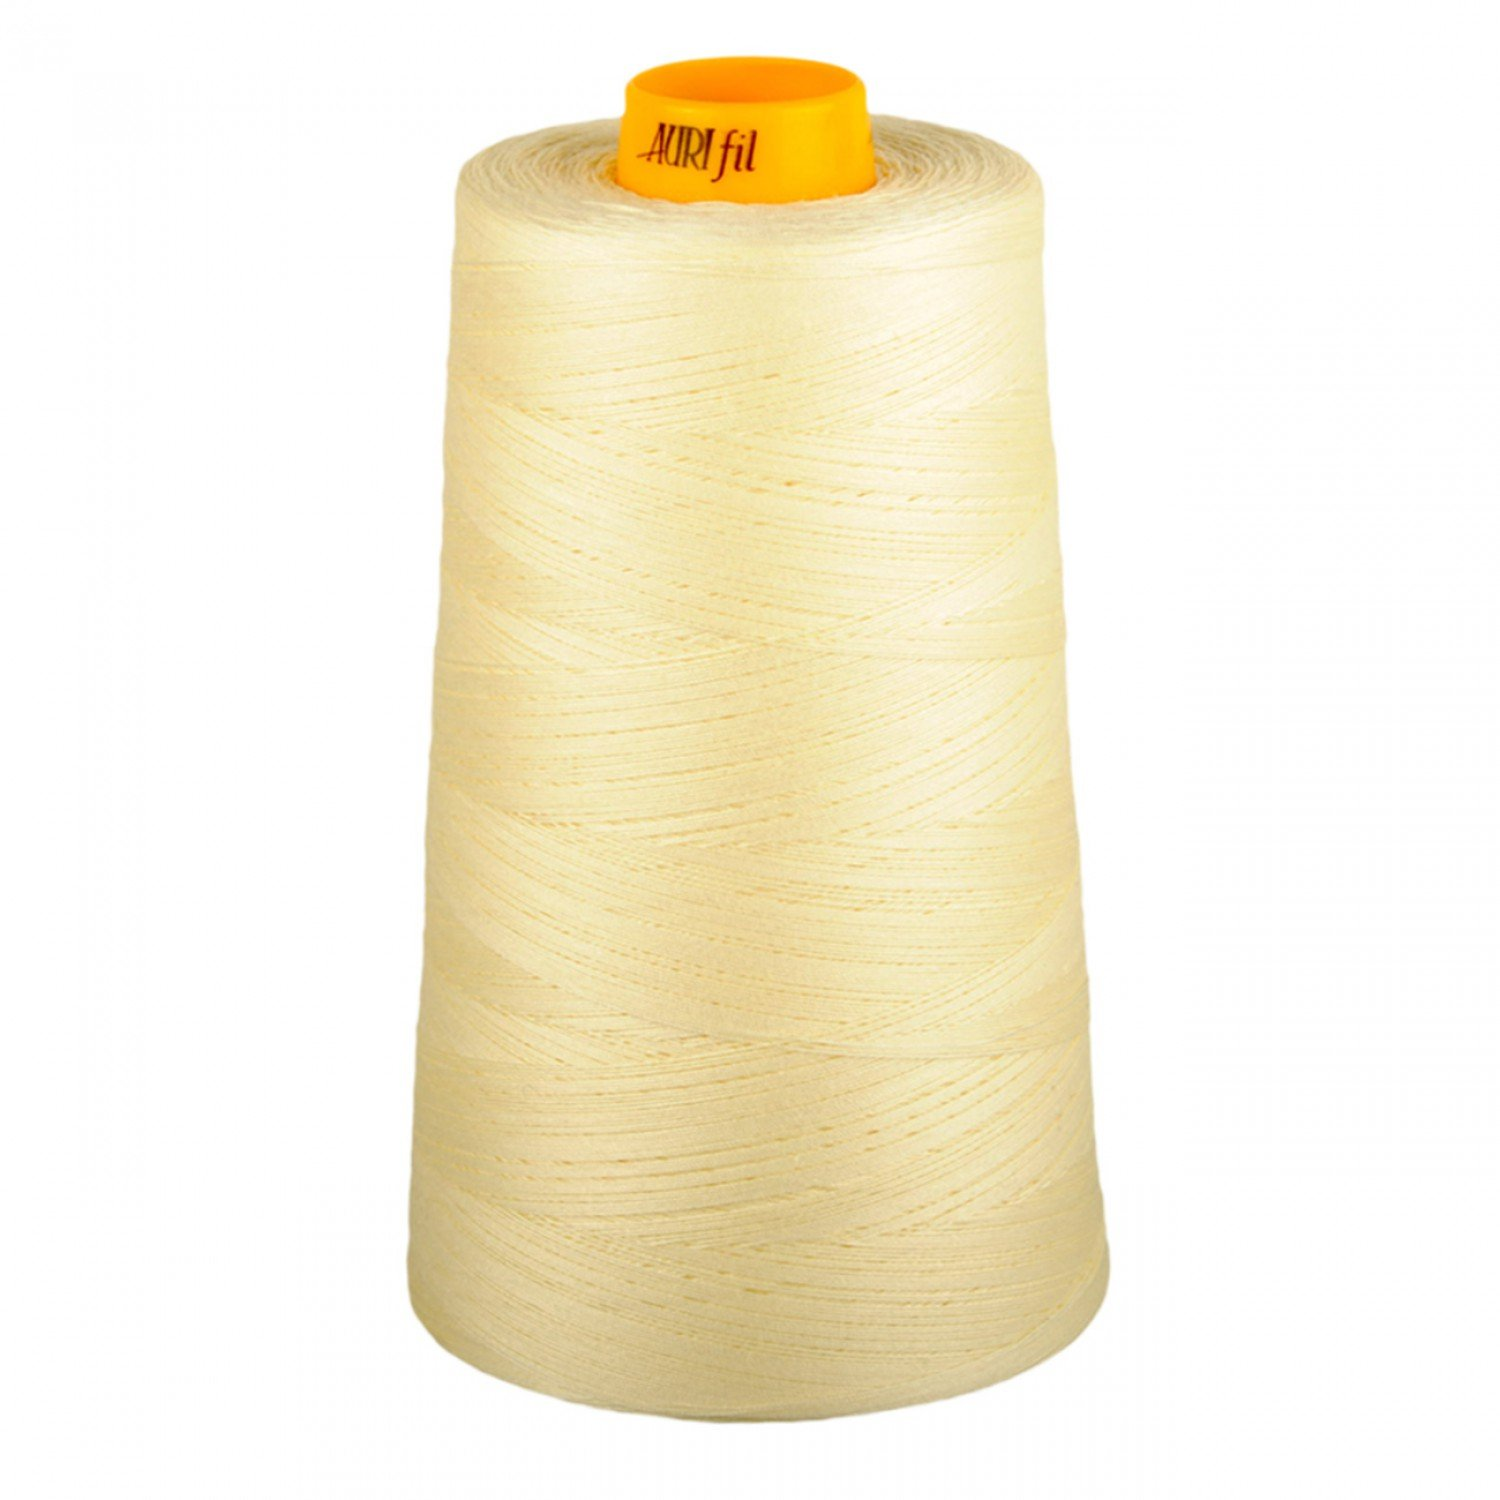 Aurifil Cotton 3-ply Longarm Thread 40wt 3280yds Light Lemon